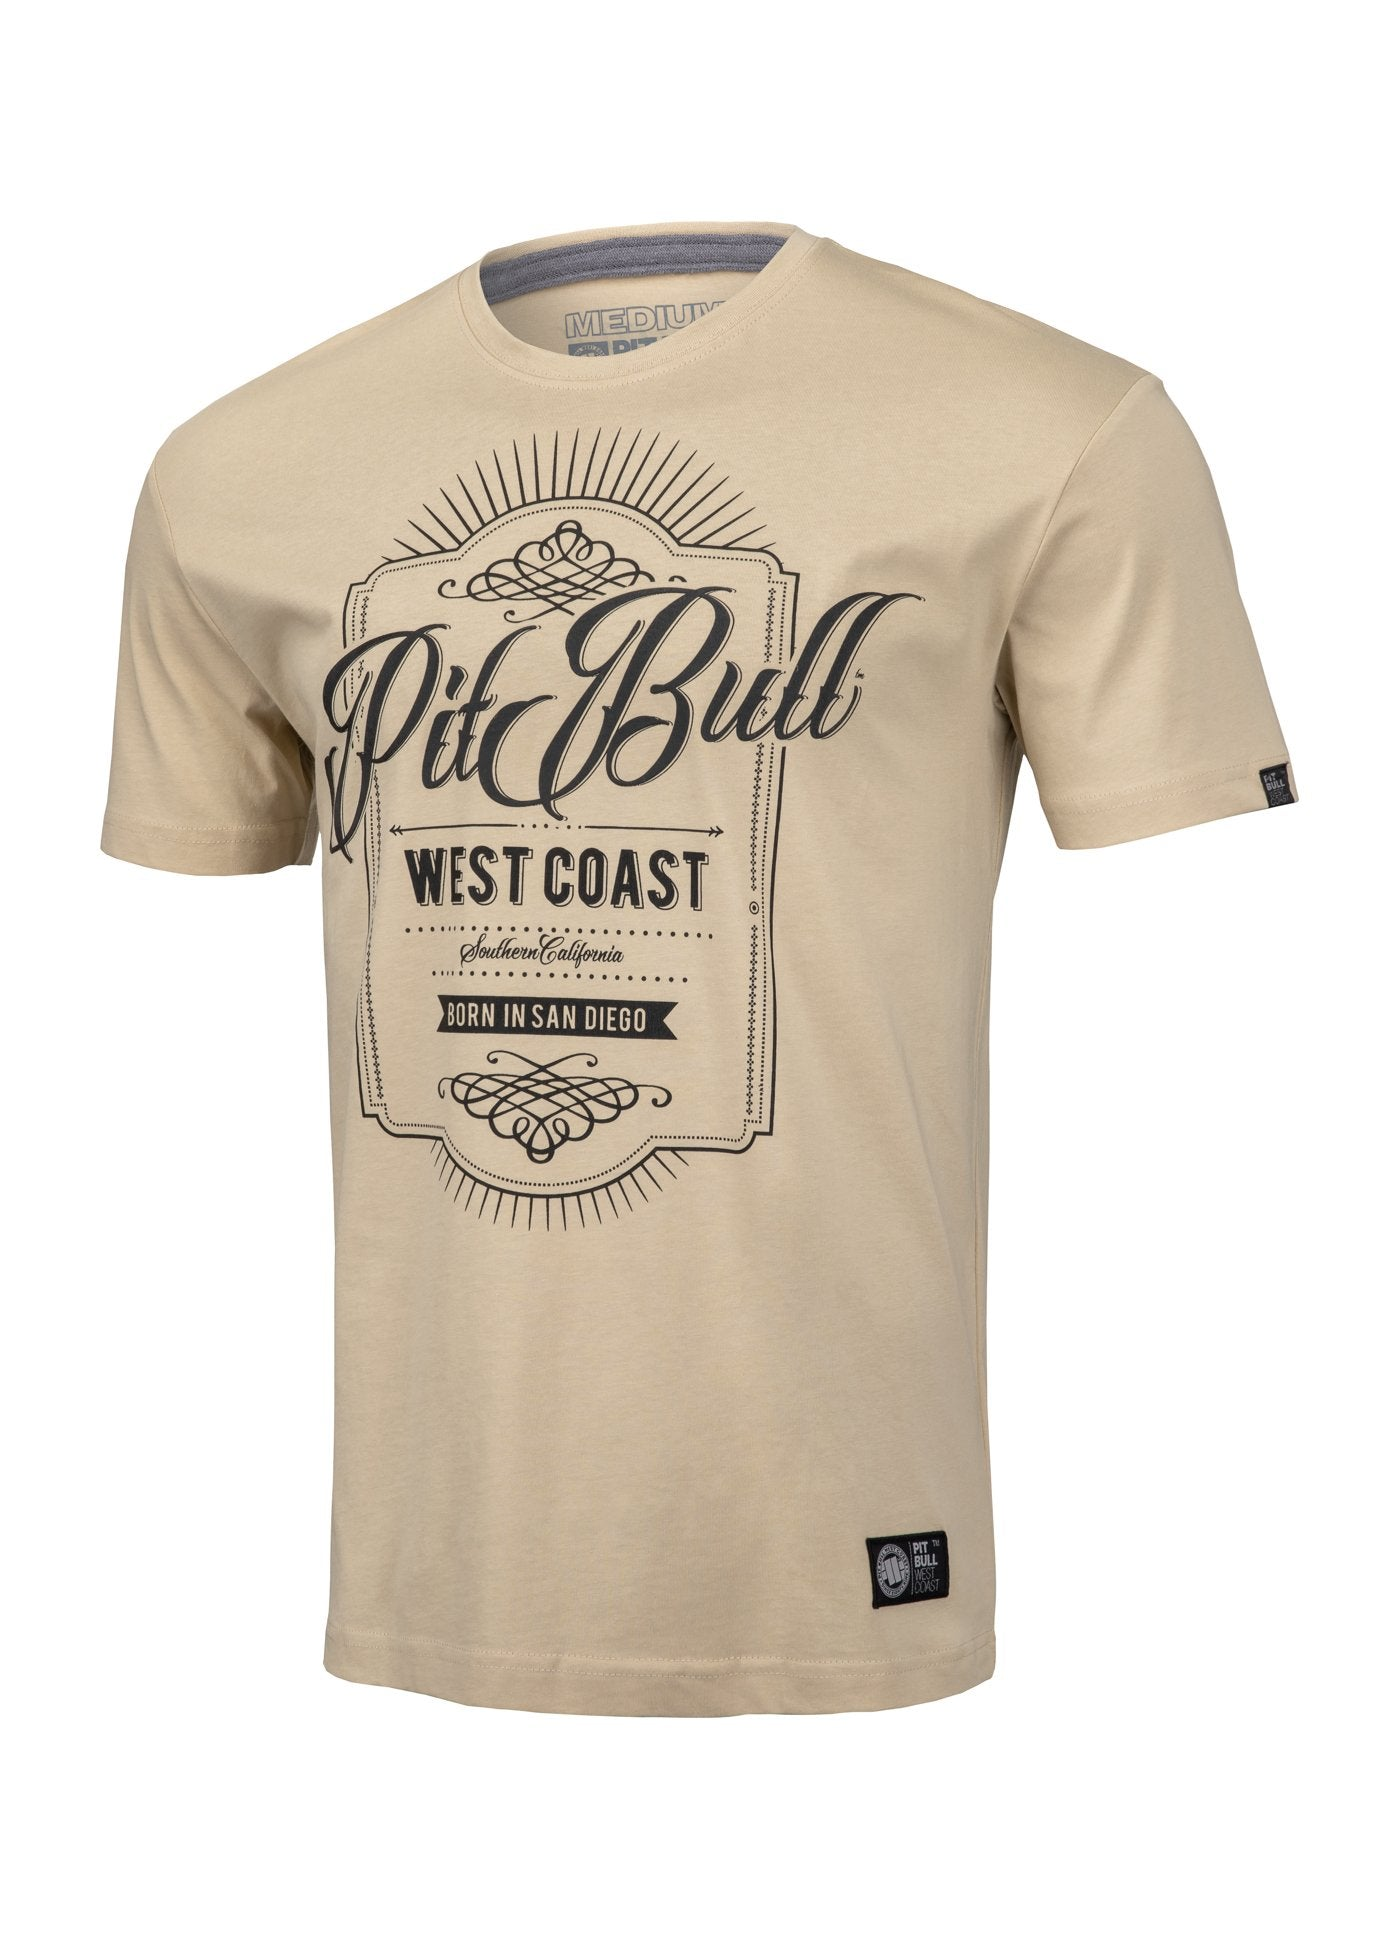 T-shirt BEER Sand - pitbullwestcoast